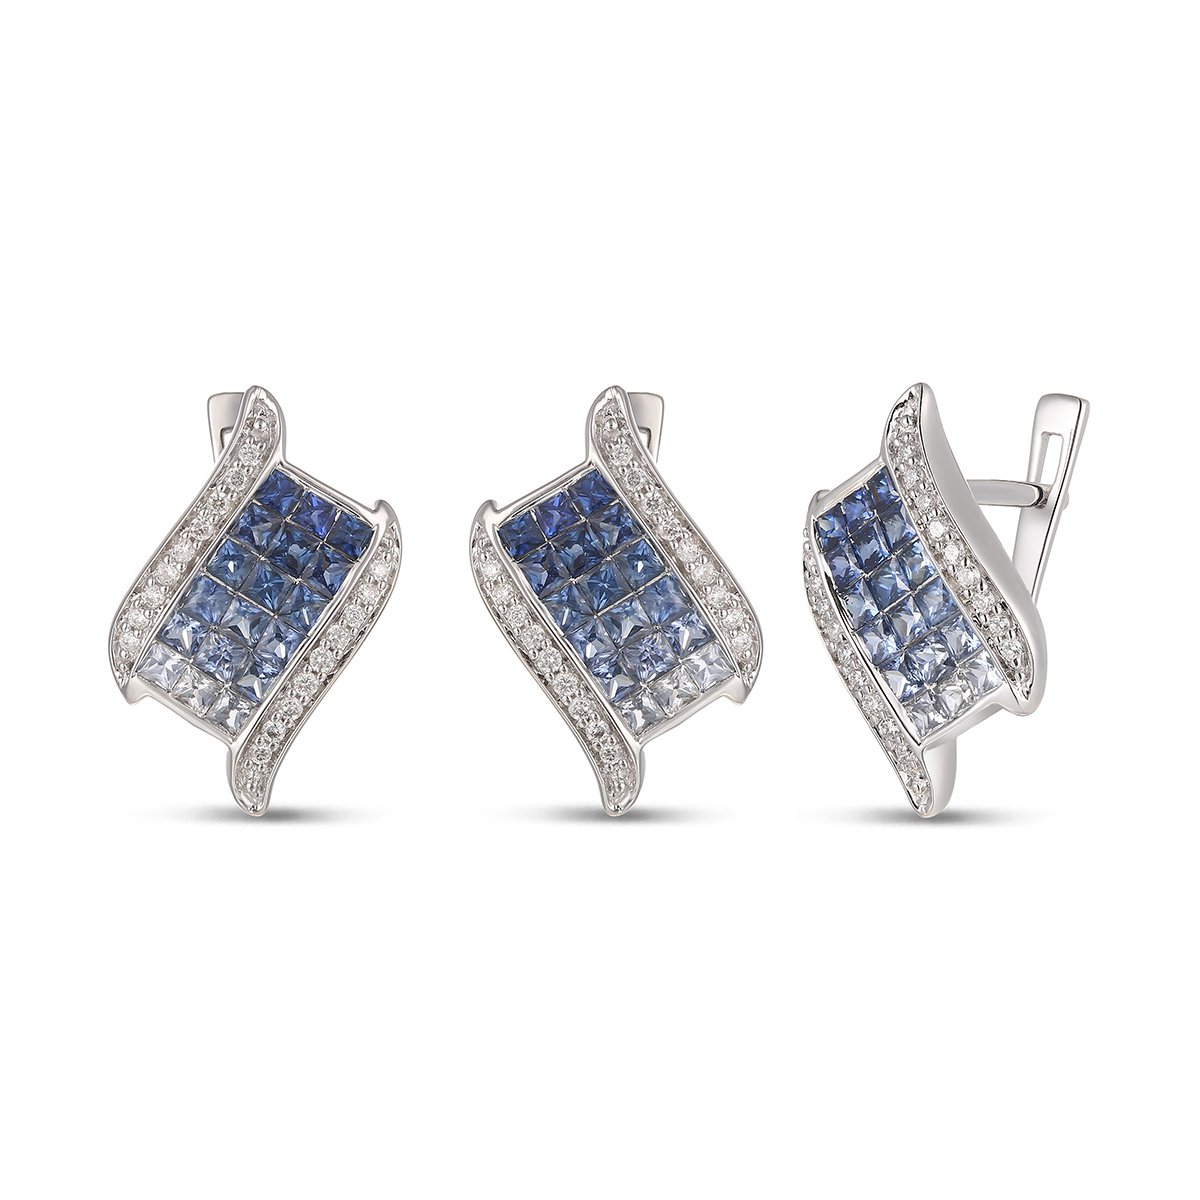 Mother's Day Gift, 14K Gold Sapphire Earring with Diamond,Sapphire Earrings, Diamond Earrings